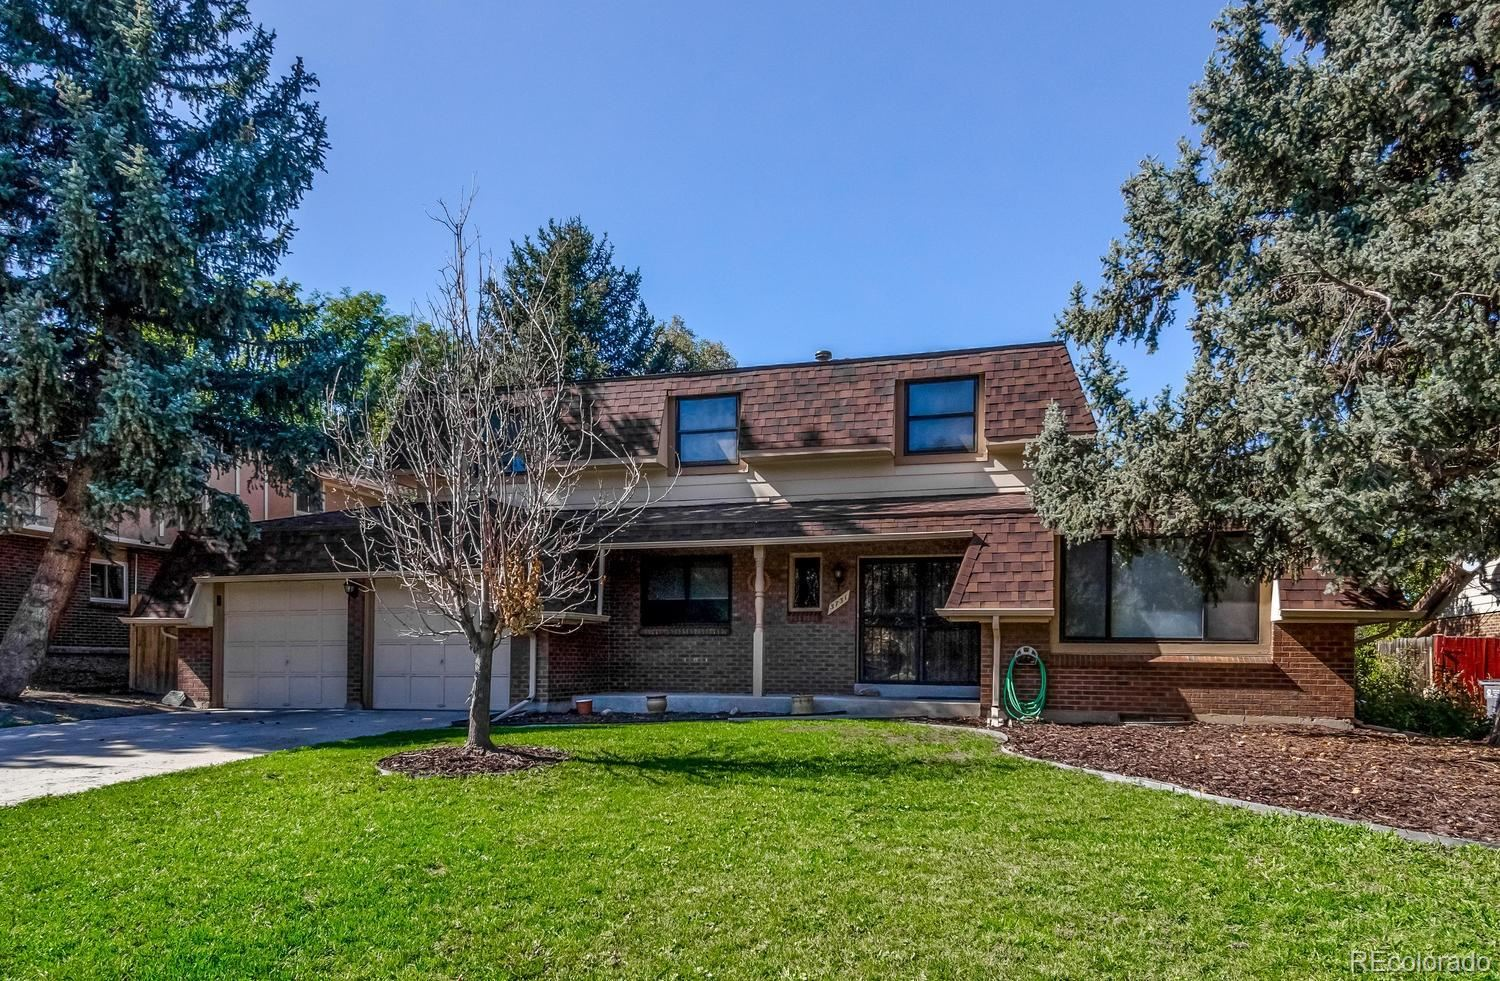 3731 S Harlan Street, Denver, CO 80235 - #: 9374401